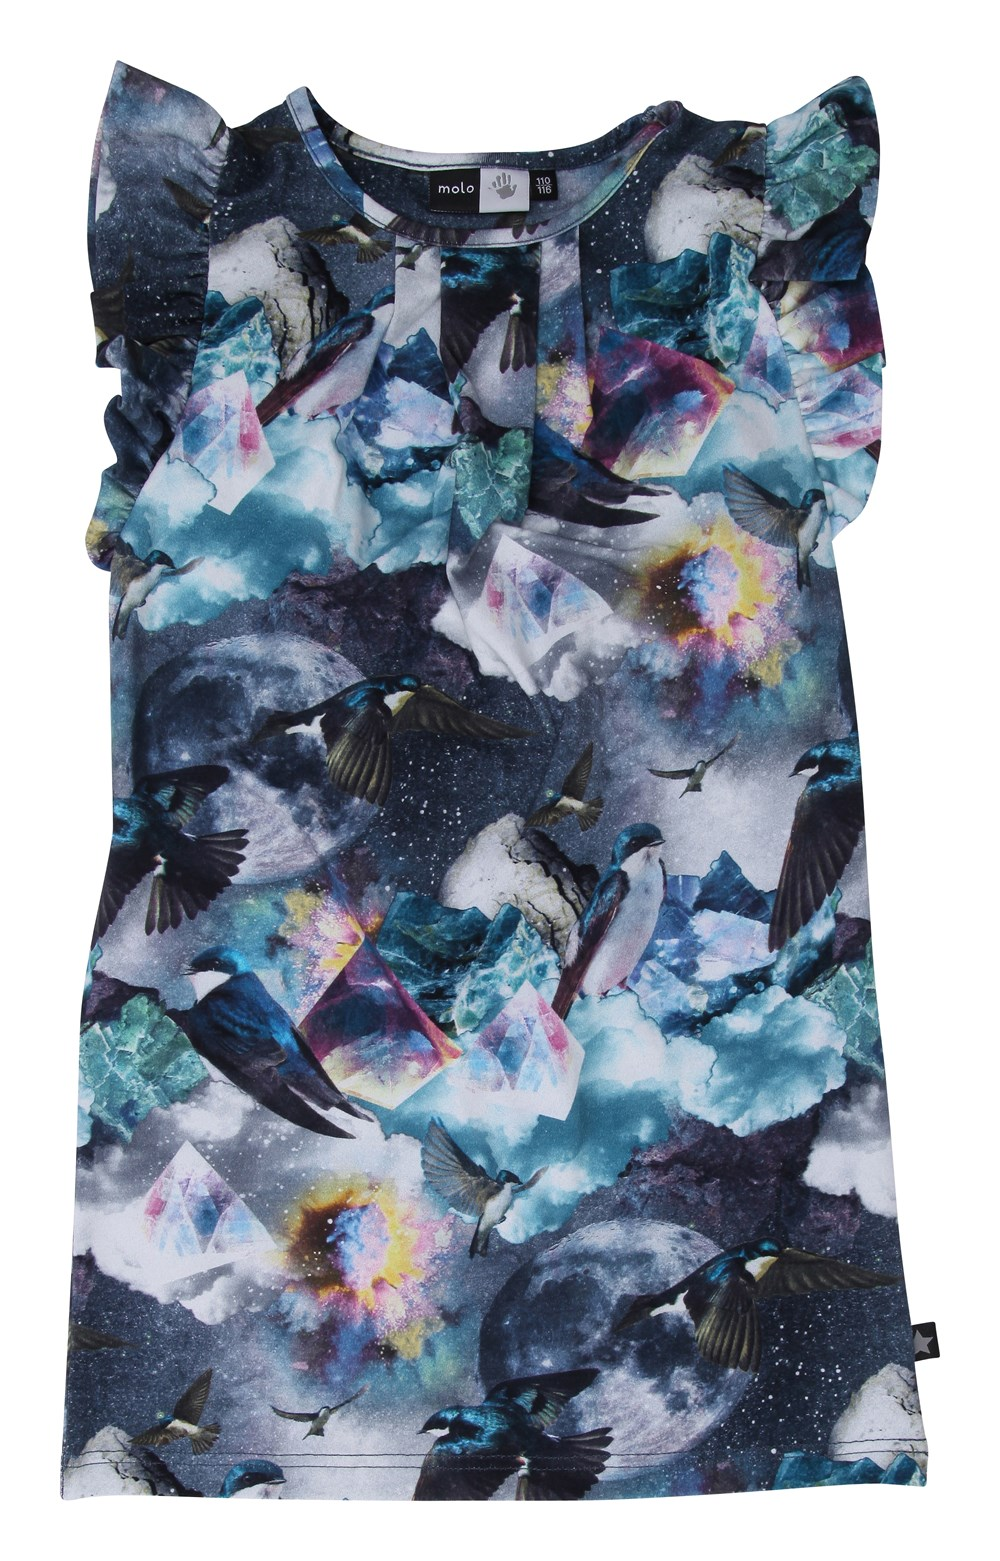 Cam - Mineral Universe - molo printed top with butterfly sleeves